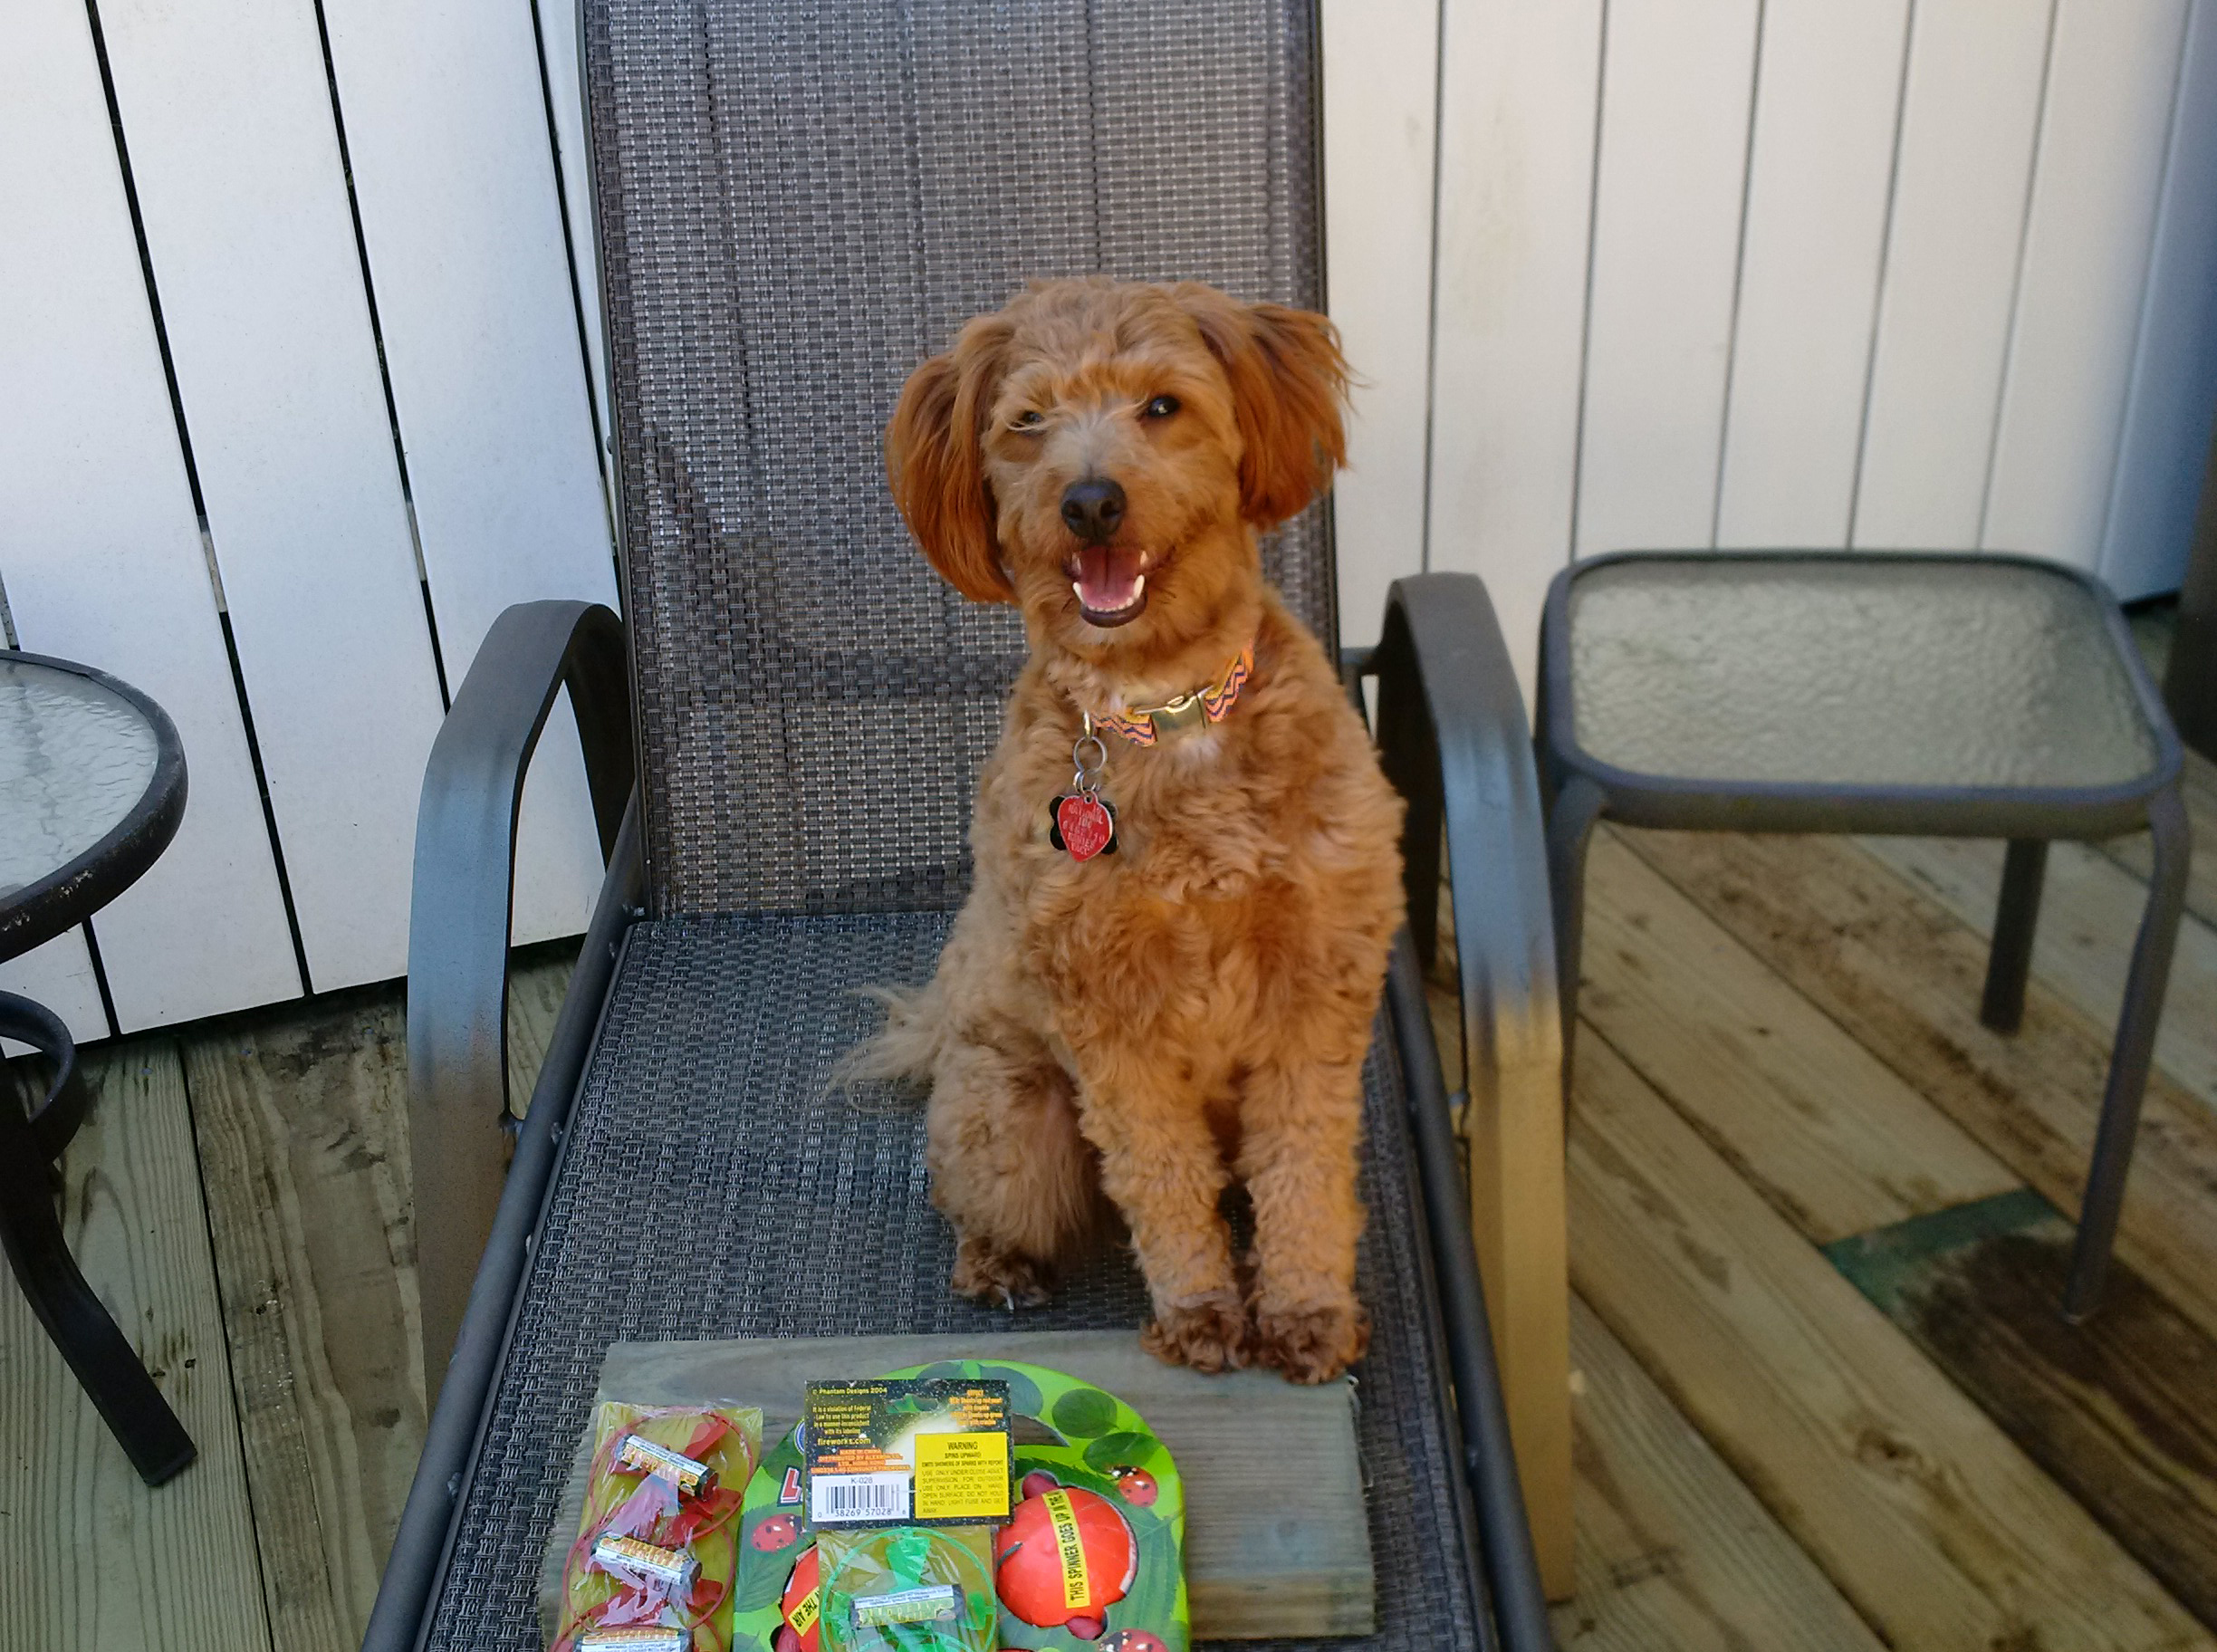 Dog on lawn chair with fireworks